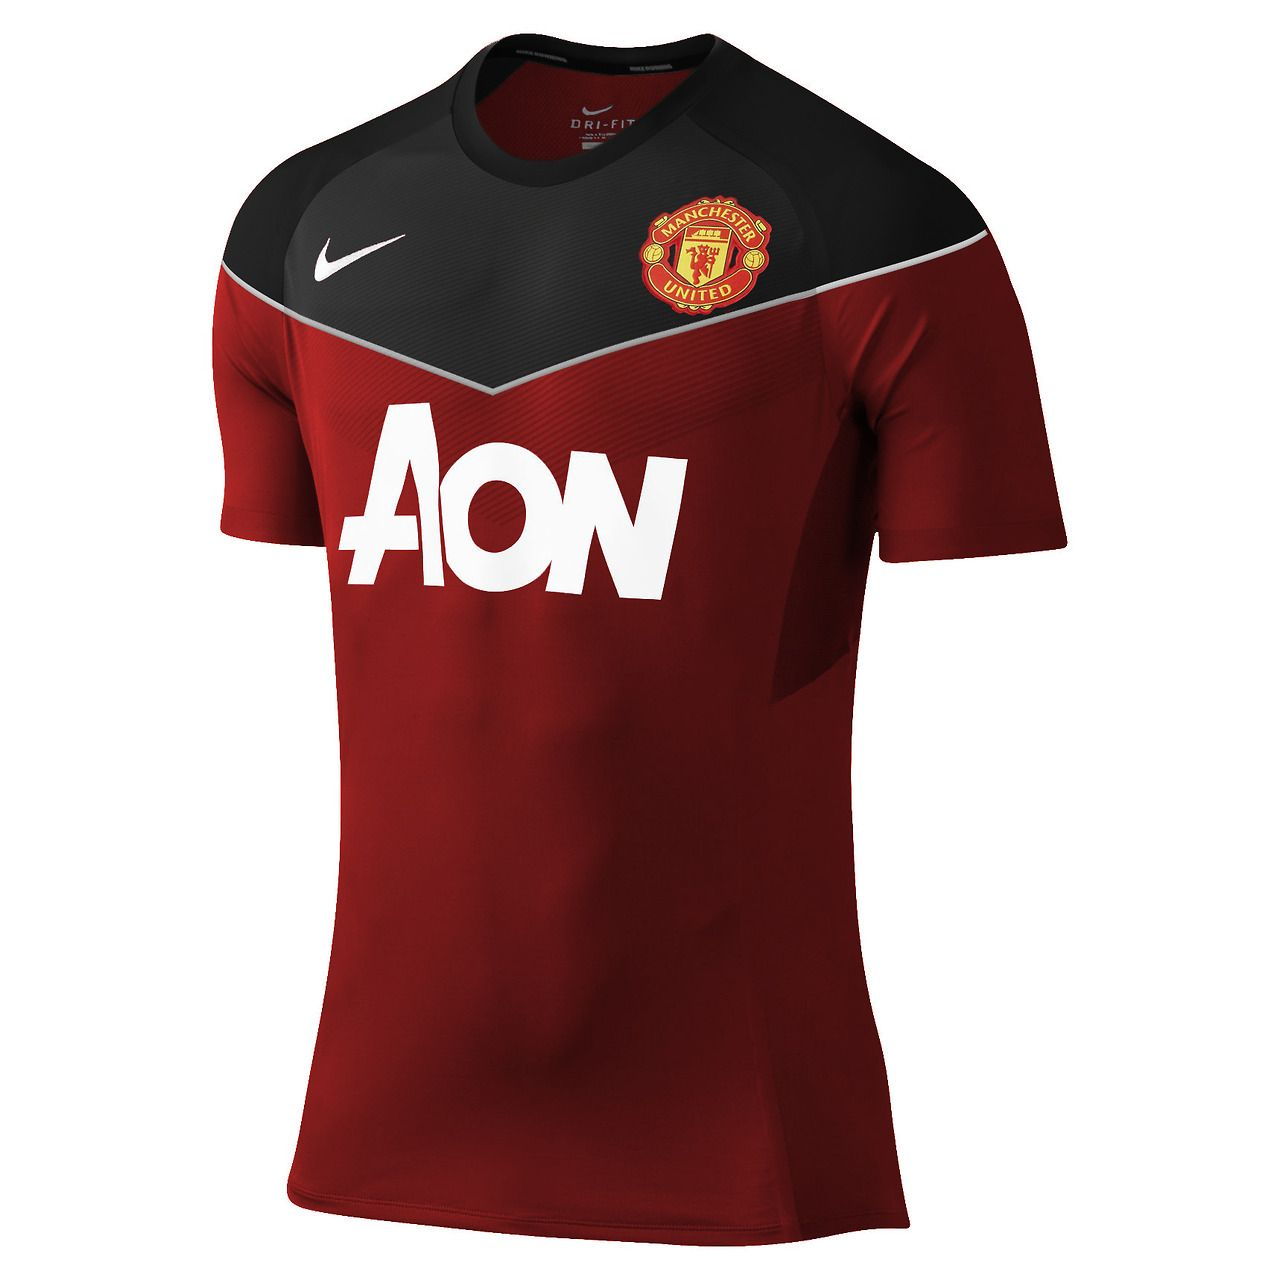 A new strong look for the Manchester United kit.  6d1c61aa850aa